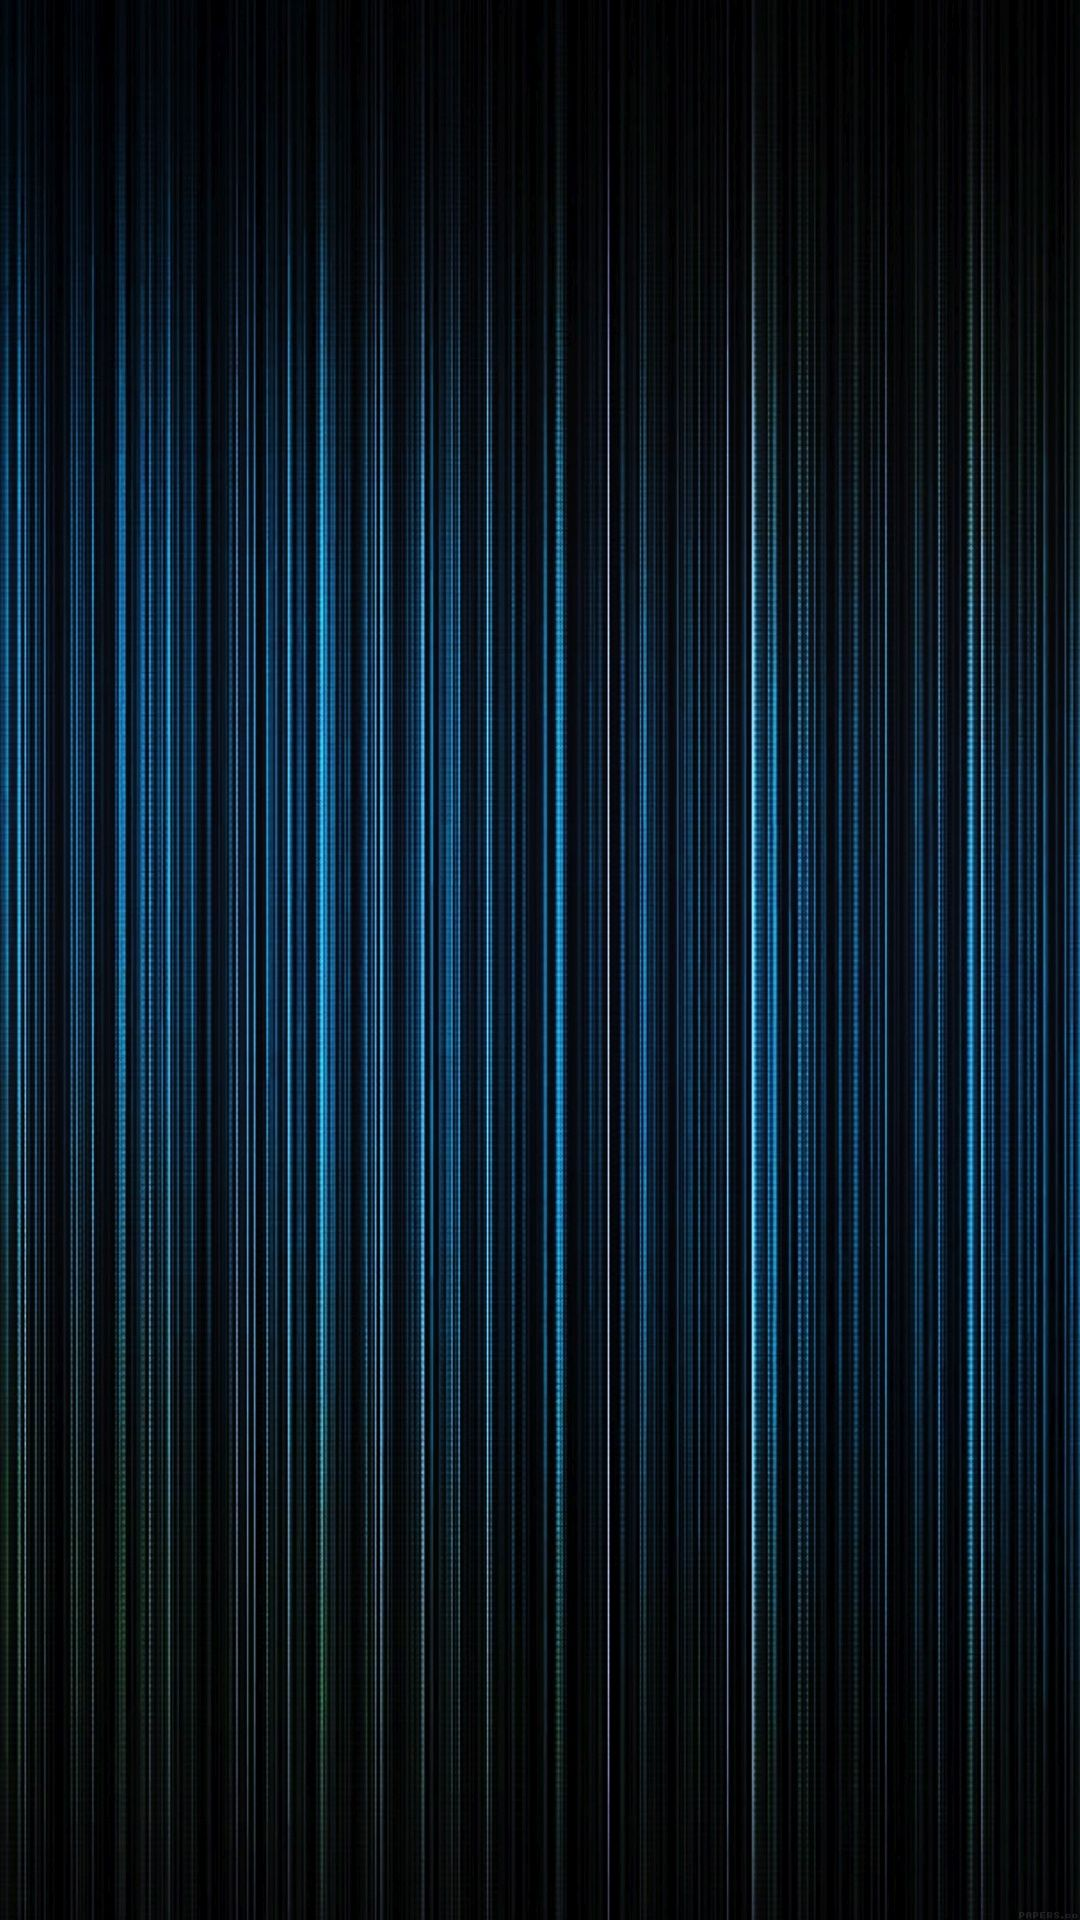 Vertical Blue Lines Abstract Iphone 6 Hd Wallpaper Free Wallpapers For Iphone 6 And Iphone Android Wallpaper Blue Android Wallpaper Black Iphone Background